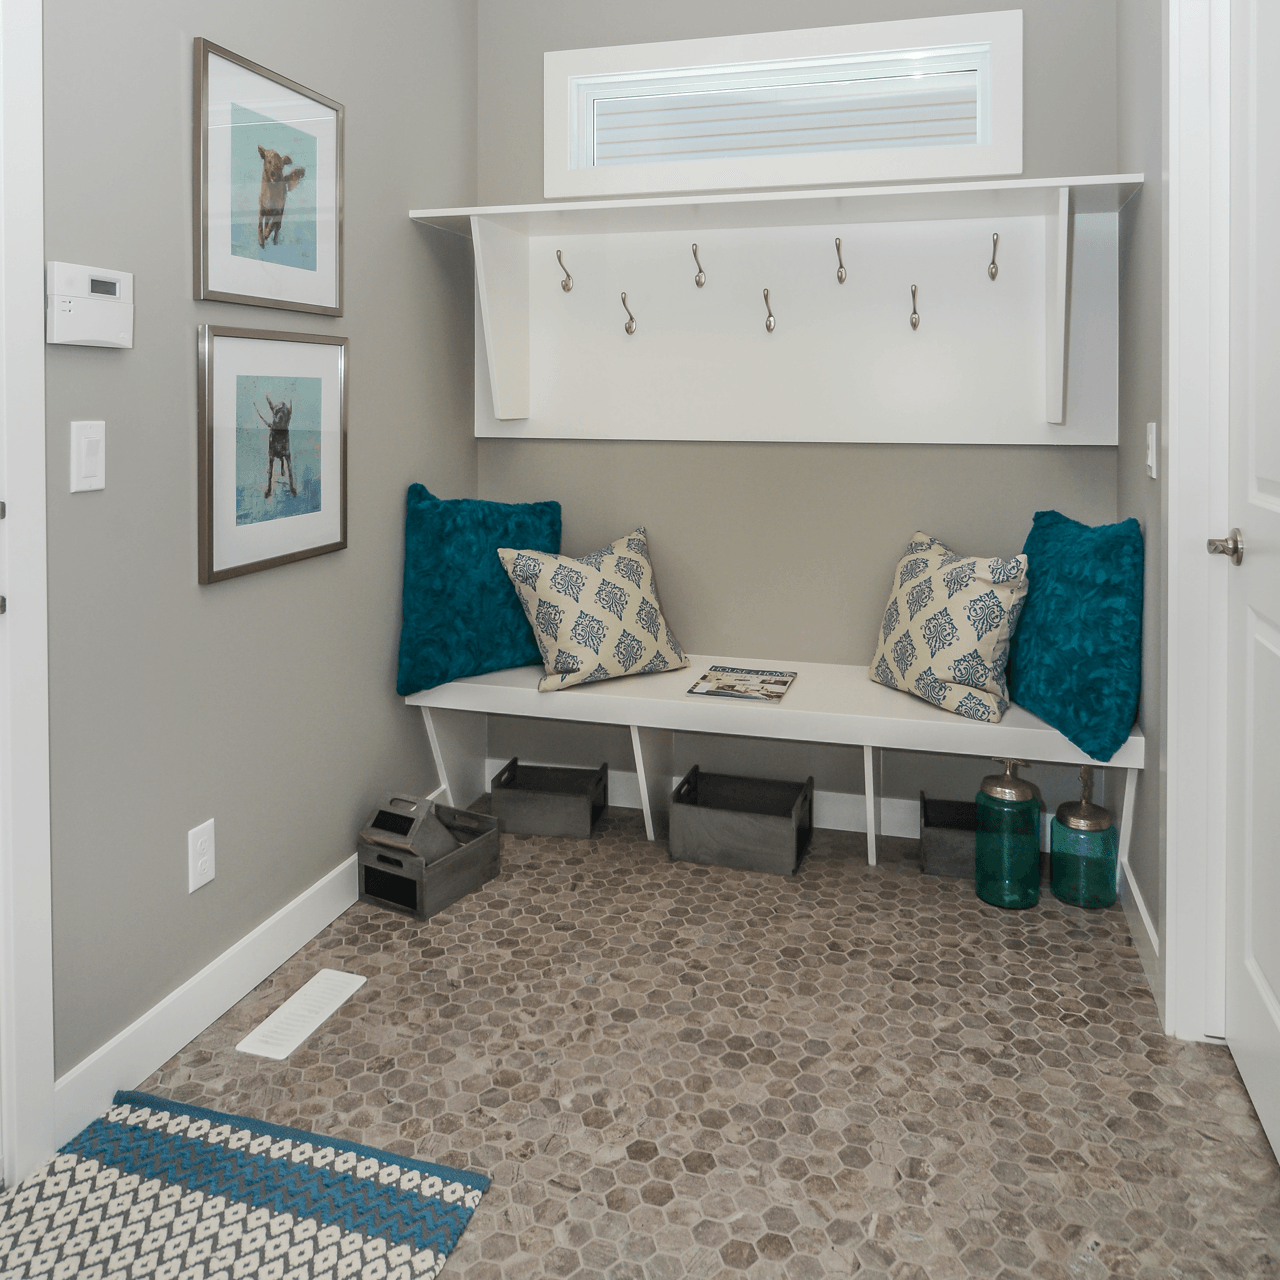 What's Under Your Feet Your New Home Flooring Options Mudroom Image